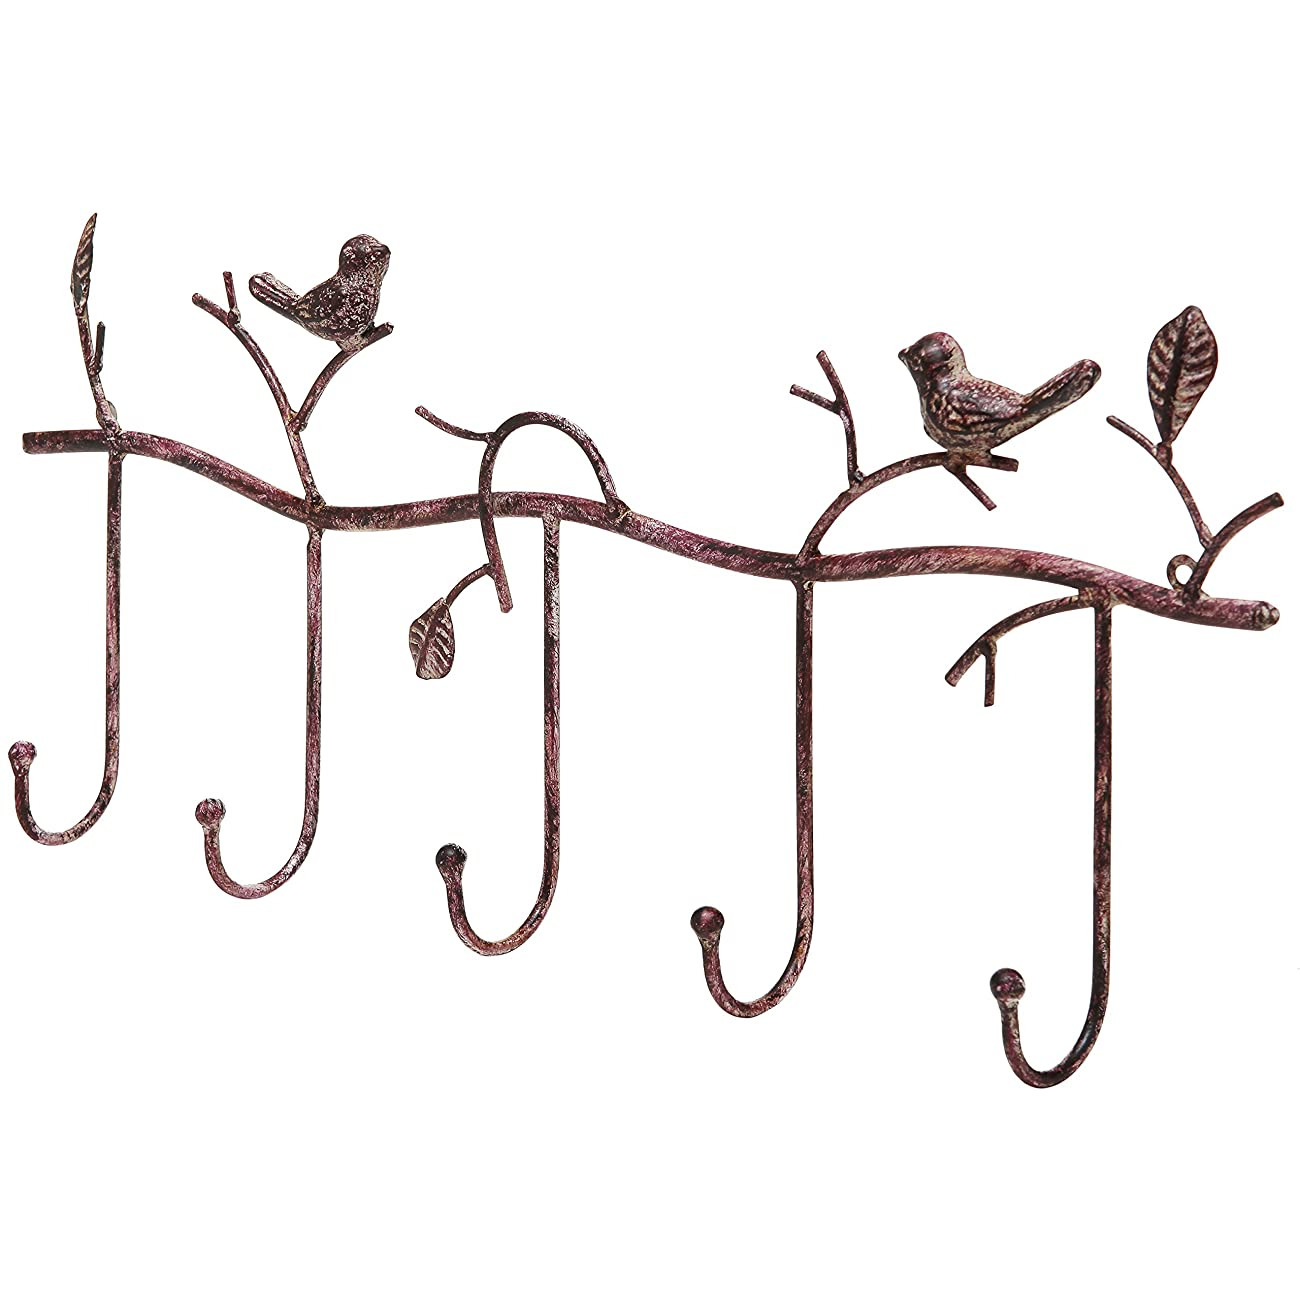 Decorative Rustic Tree Branch & Birds Wall Mounted Metal 5 Coat Hook Clothing / Towel Hanger Storage Rack 0